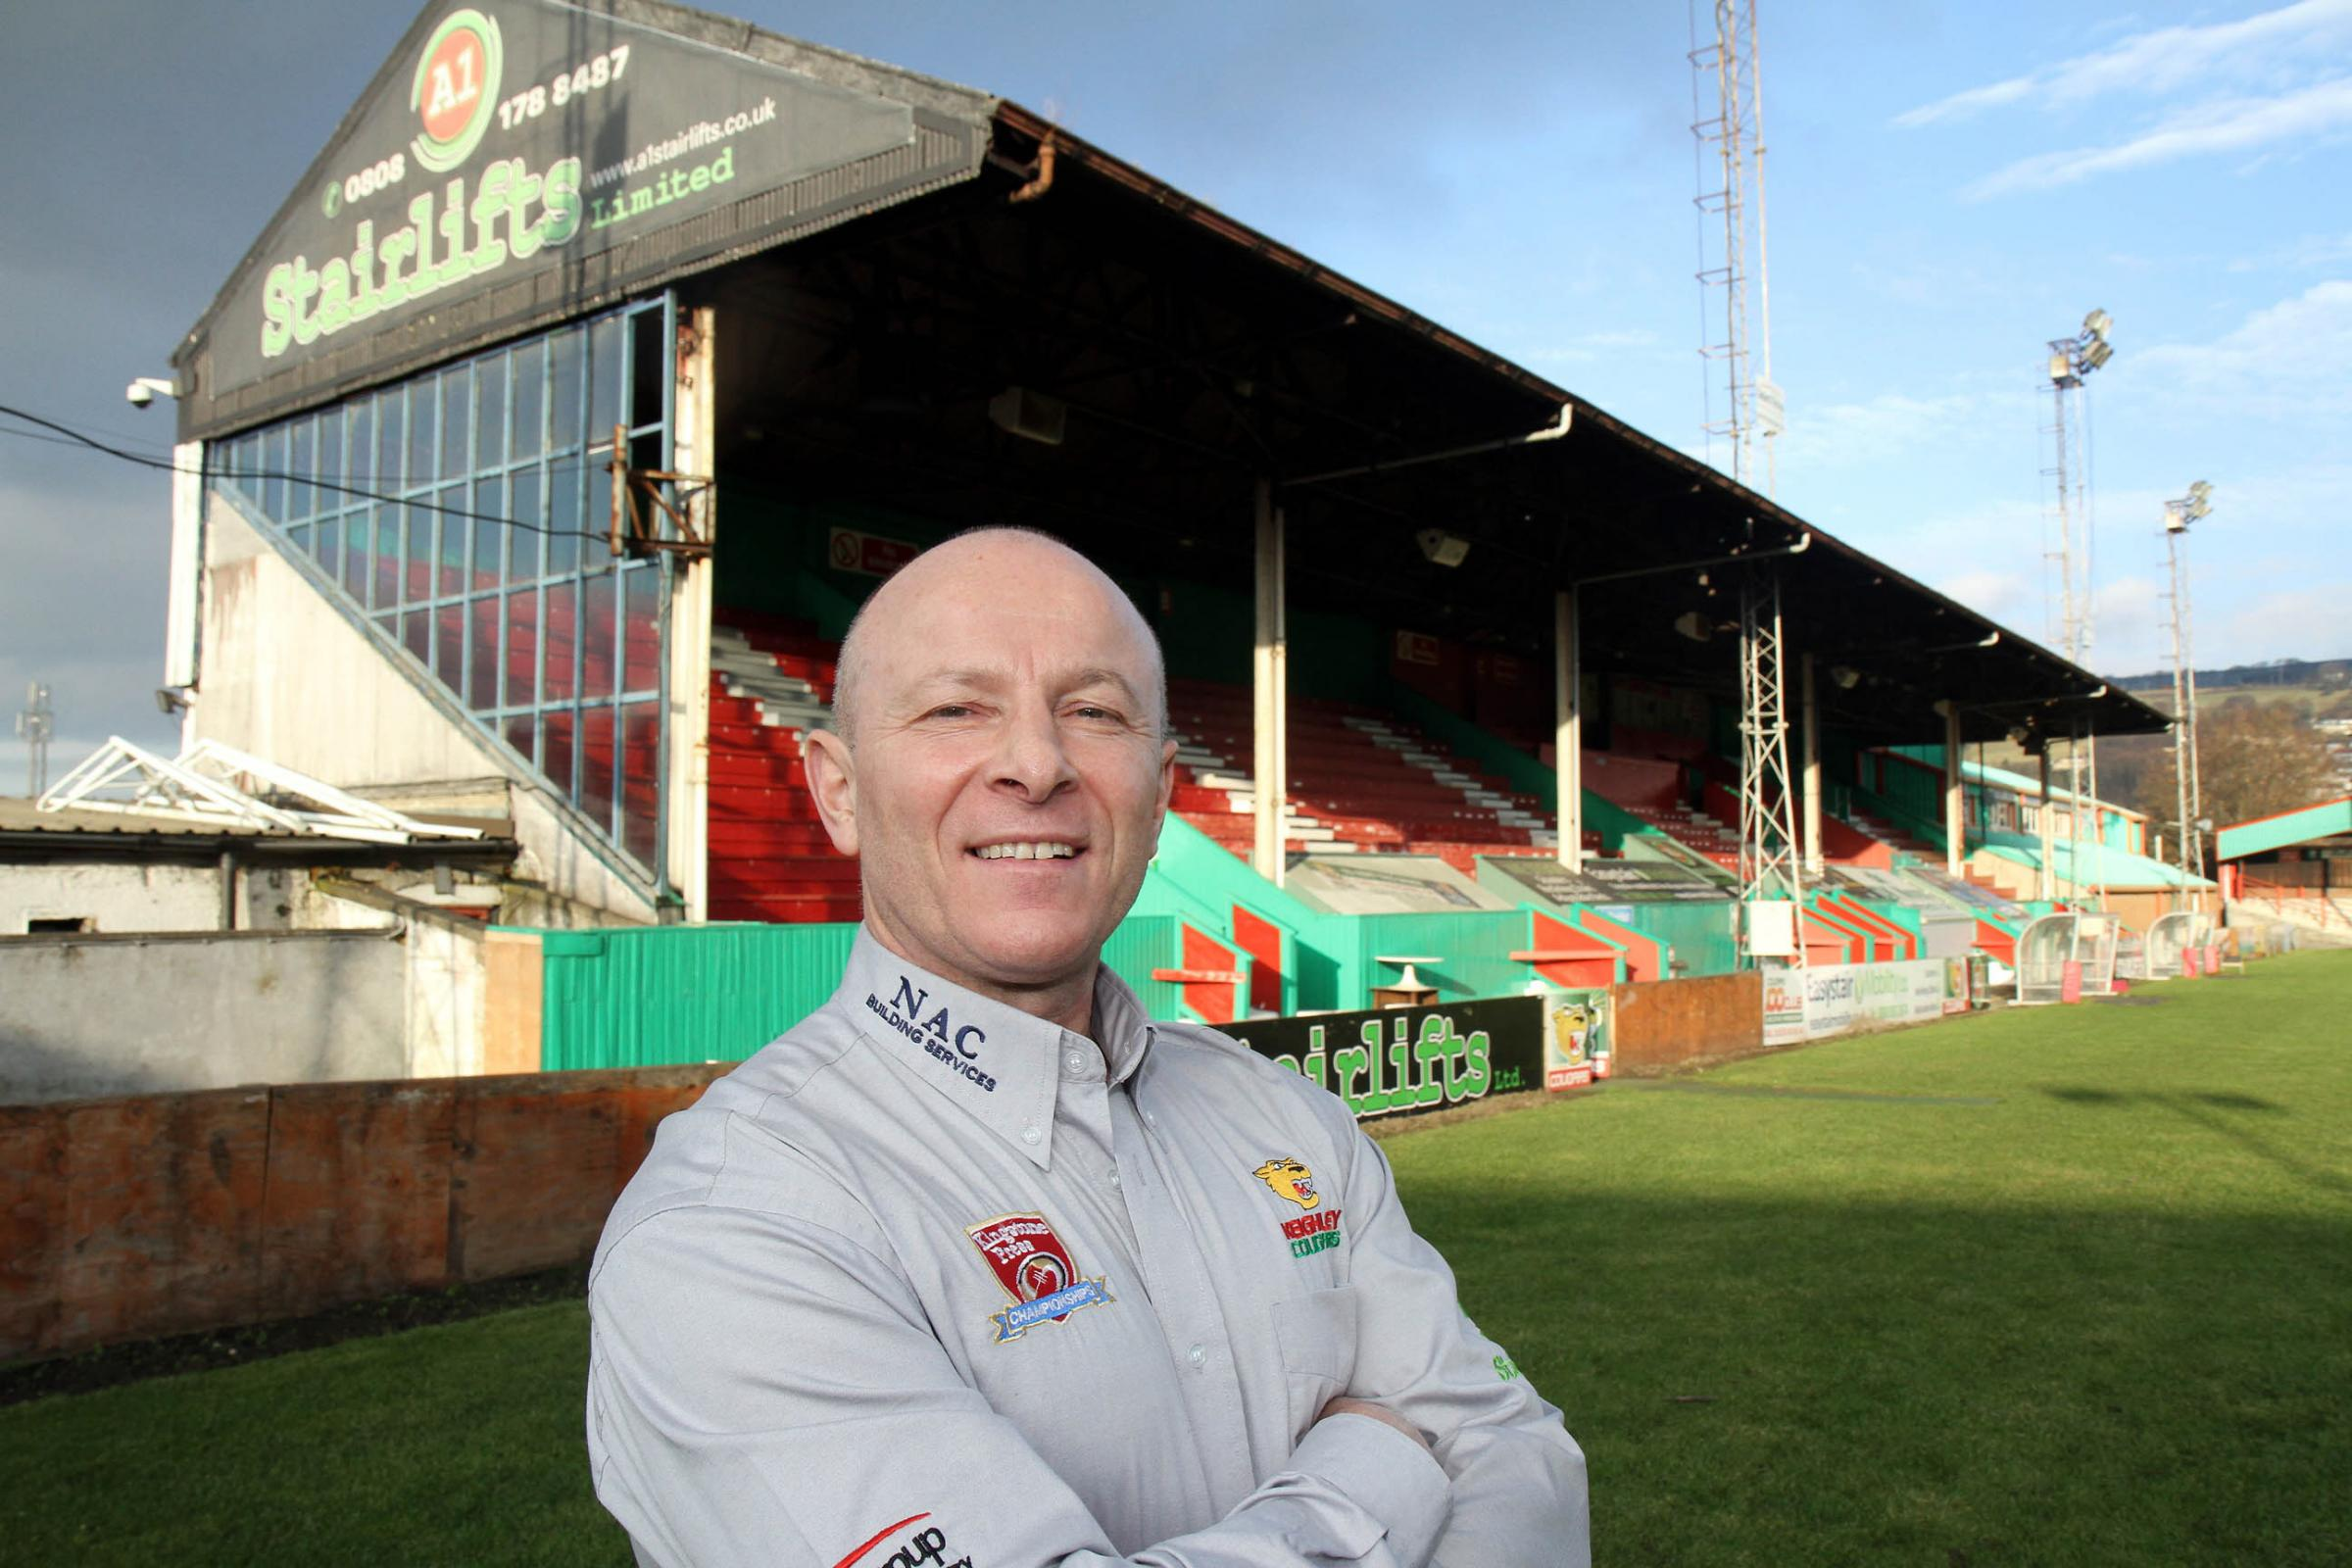 Keighley Cougars chairman, Gary Fawcett